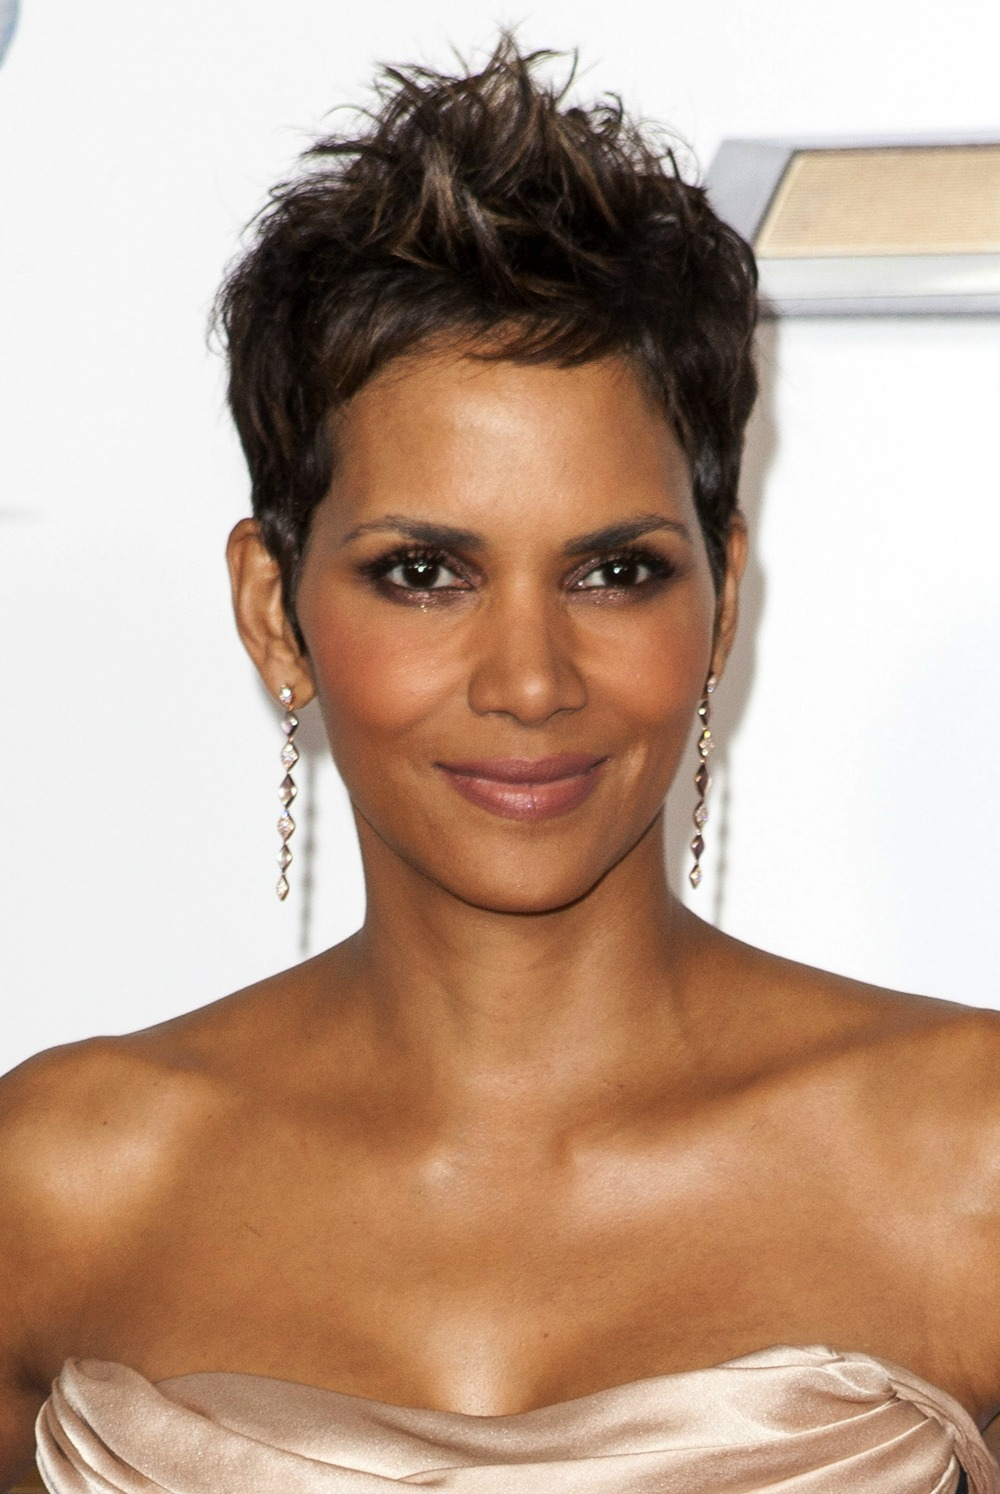 The Pixie Haircut - Celebrity Women Who Sport The Look